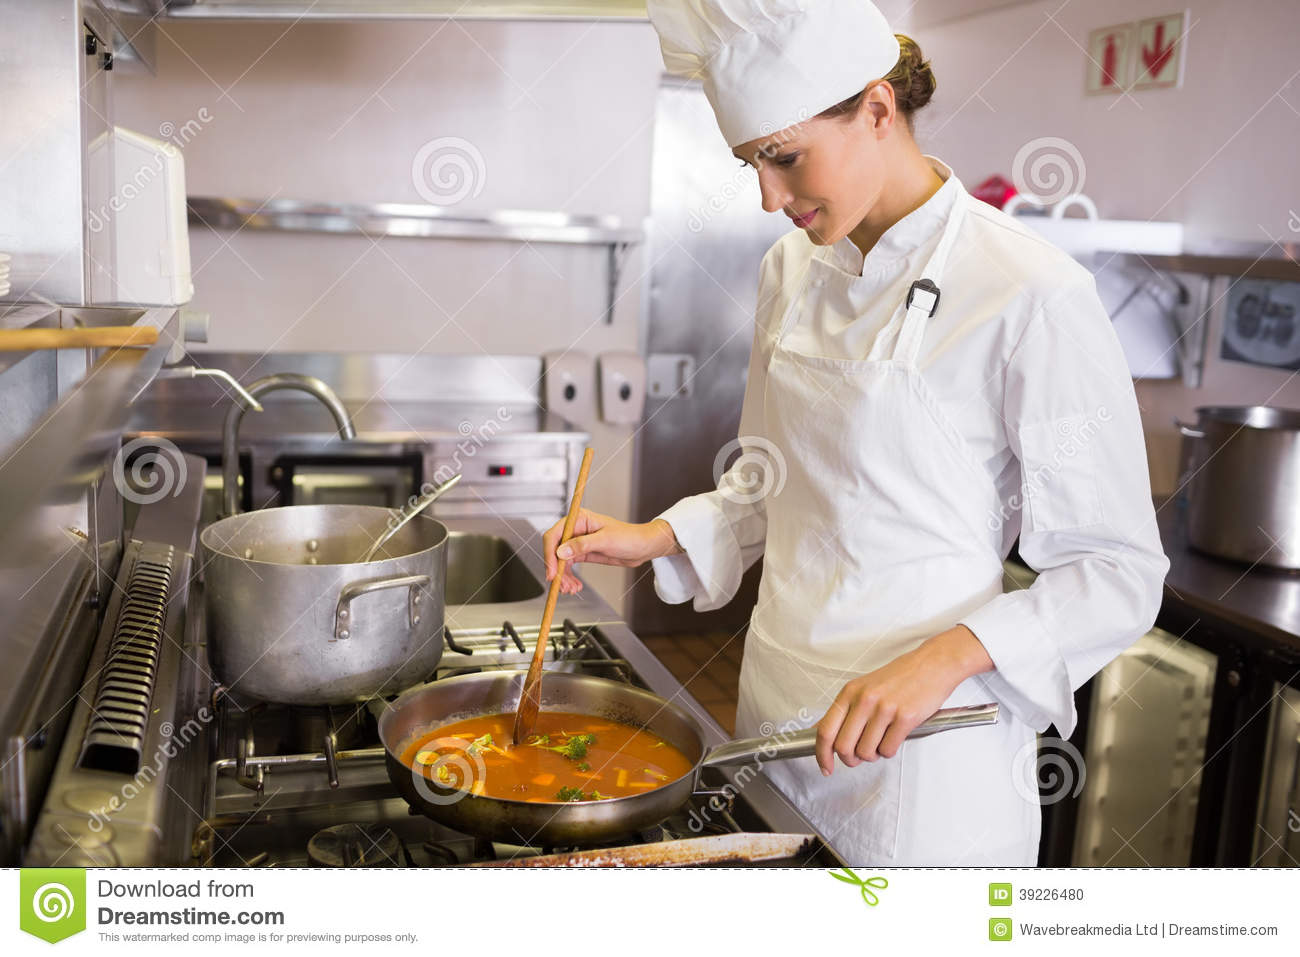 how to be a faster cook in restaurant